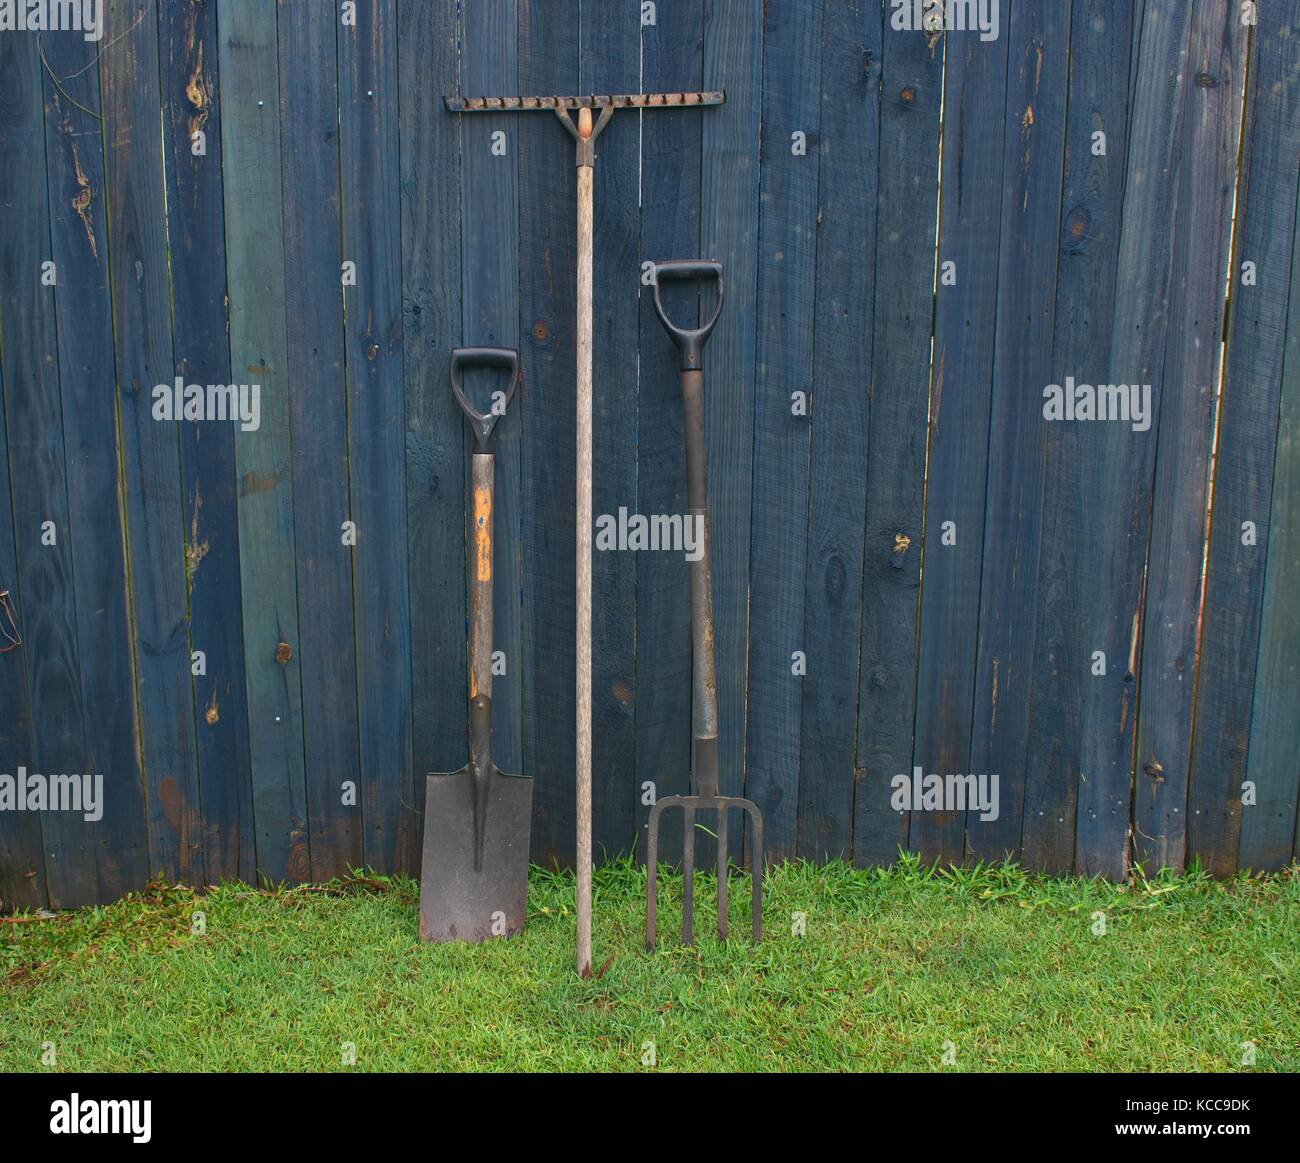 Gardening tools standing in grass against a blue fence - Stock Image